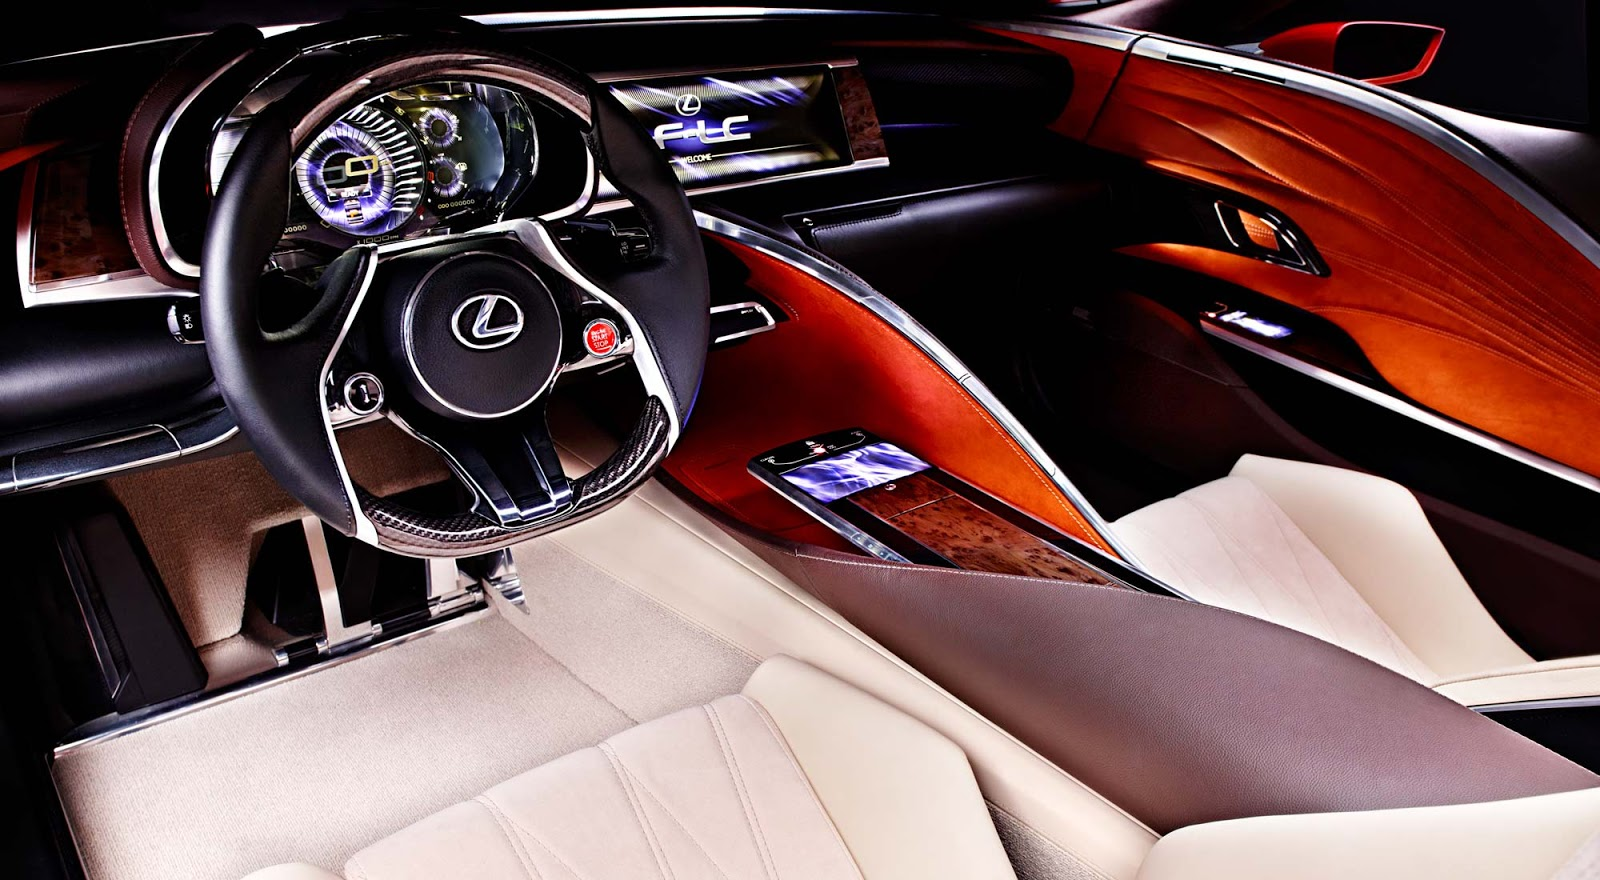 2015 lexus lfa interior. spy shots of the interior are currently unavailable but letu0027s remind ourselves what this lexus lflc based coupe was designed to look like from inside 2015 lfa